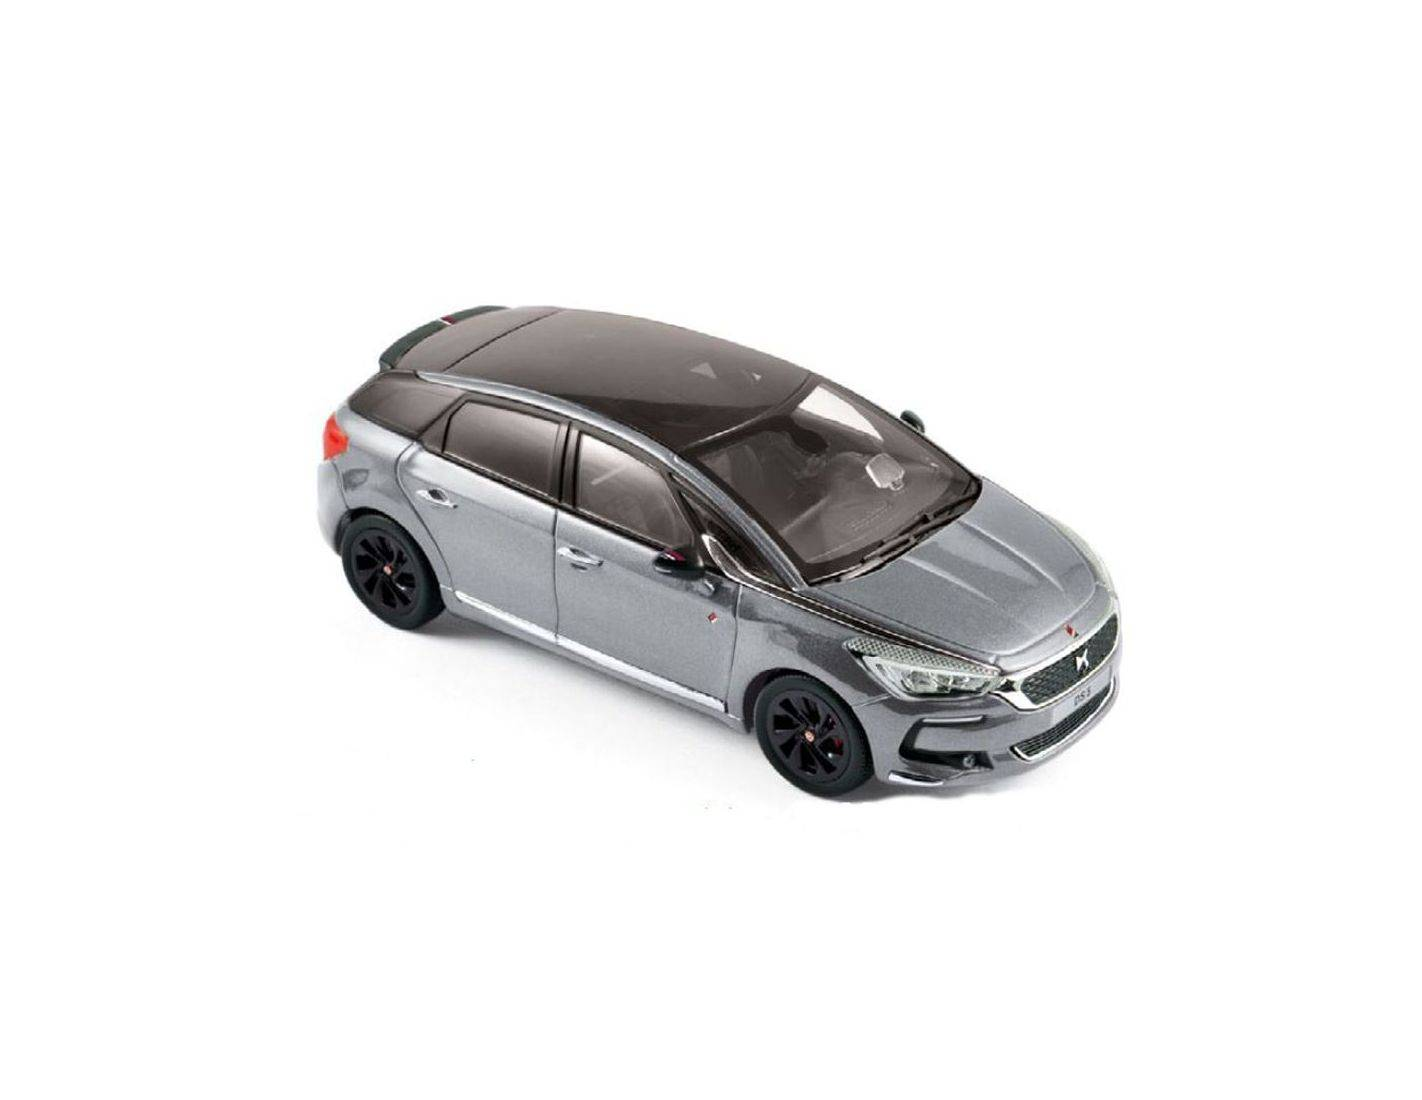 Norev NV155576 CITROEN DS 5 PERFORMANCE LINE 2016 PLATINIUM GREY 1:43 Modellino